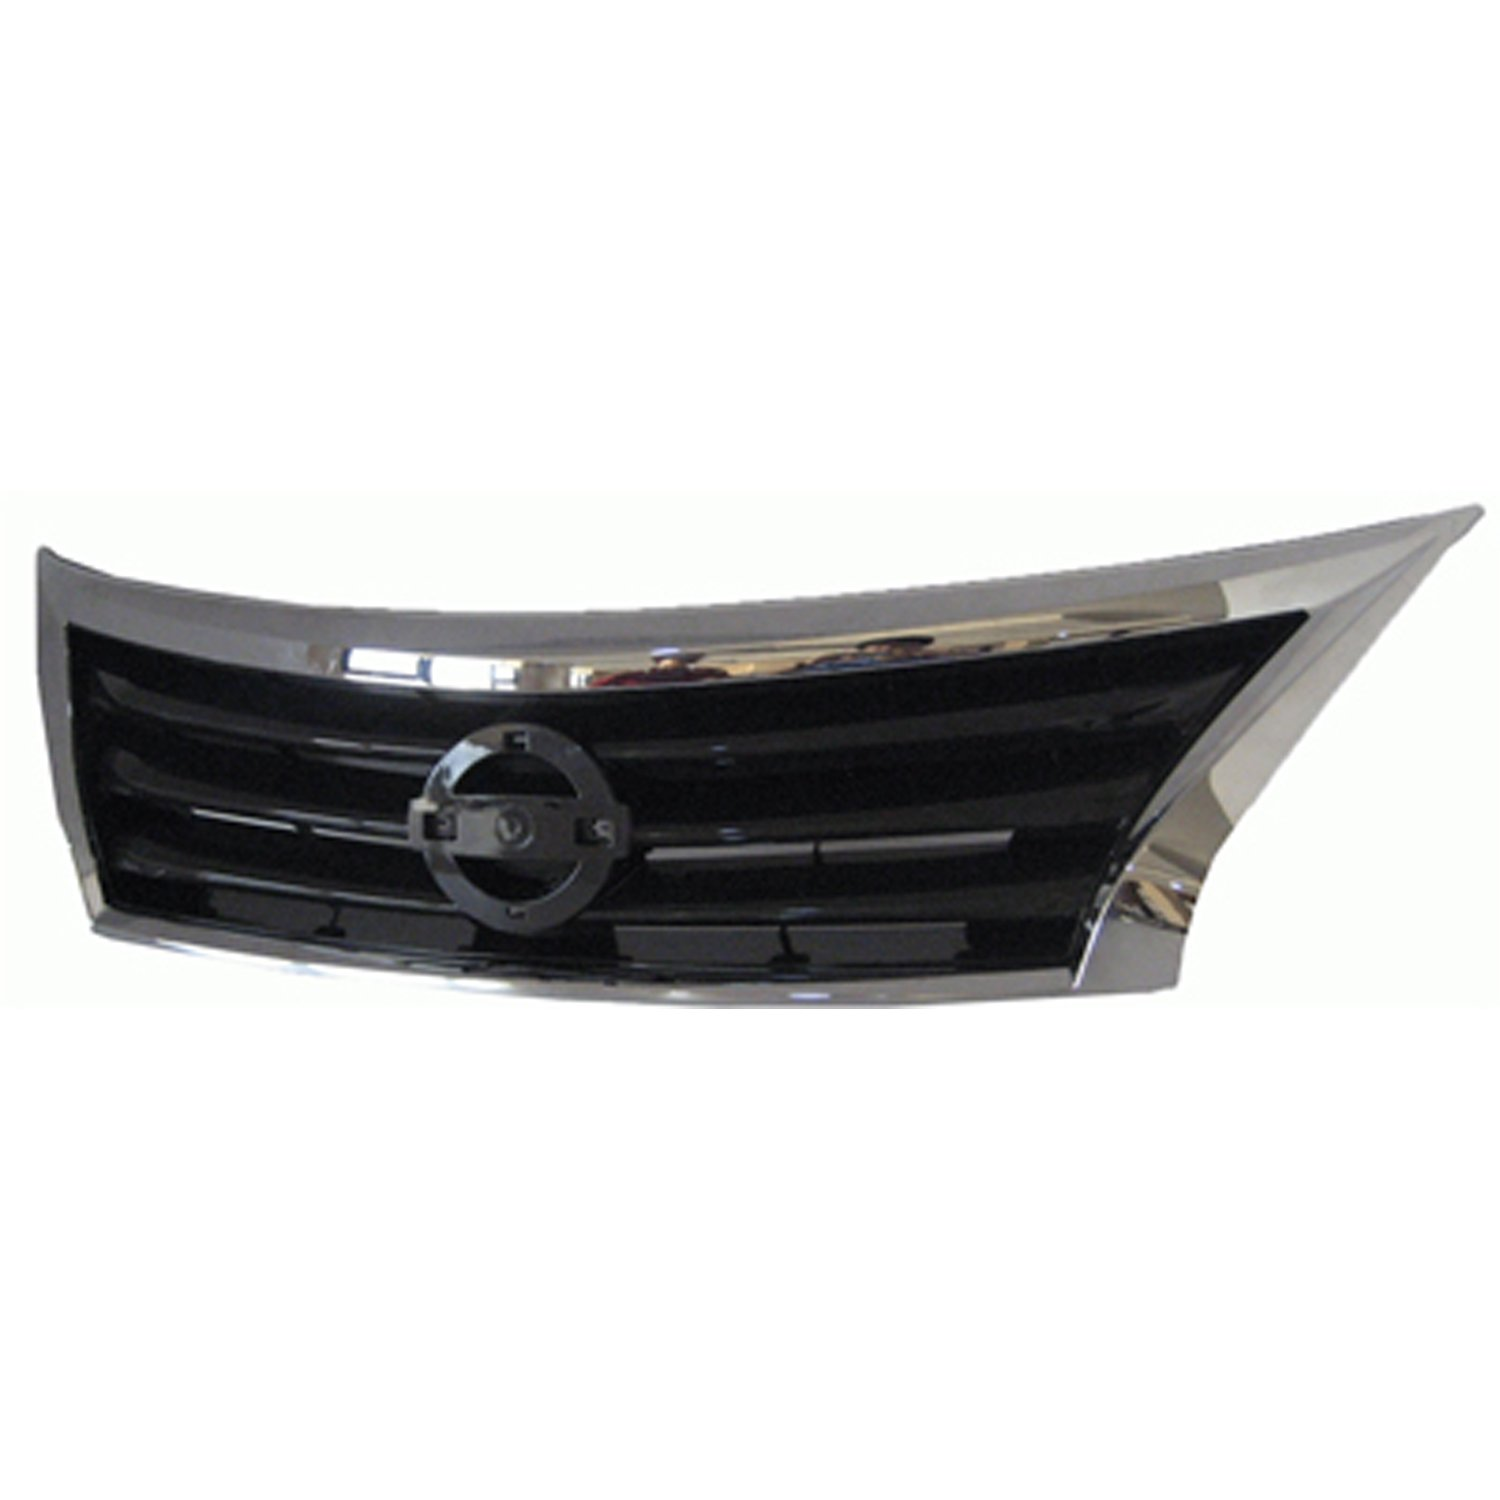 CPP Chrome Shell w//Black Insert Grille Assembly for 2013-2015 Nissan Altima Sedan